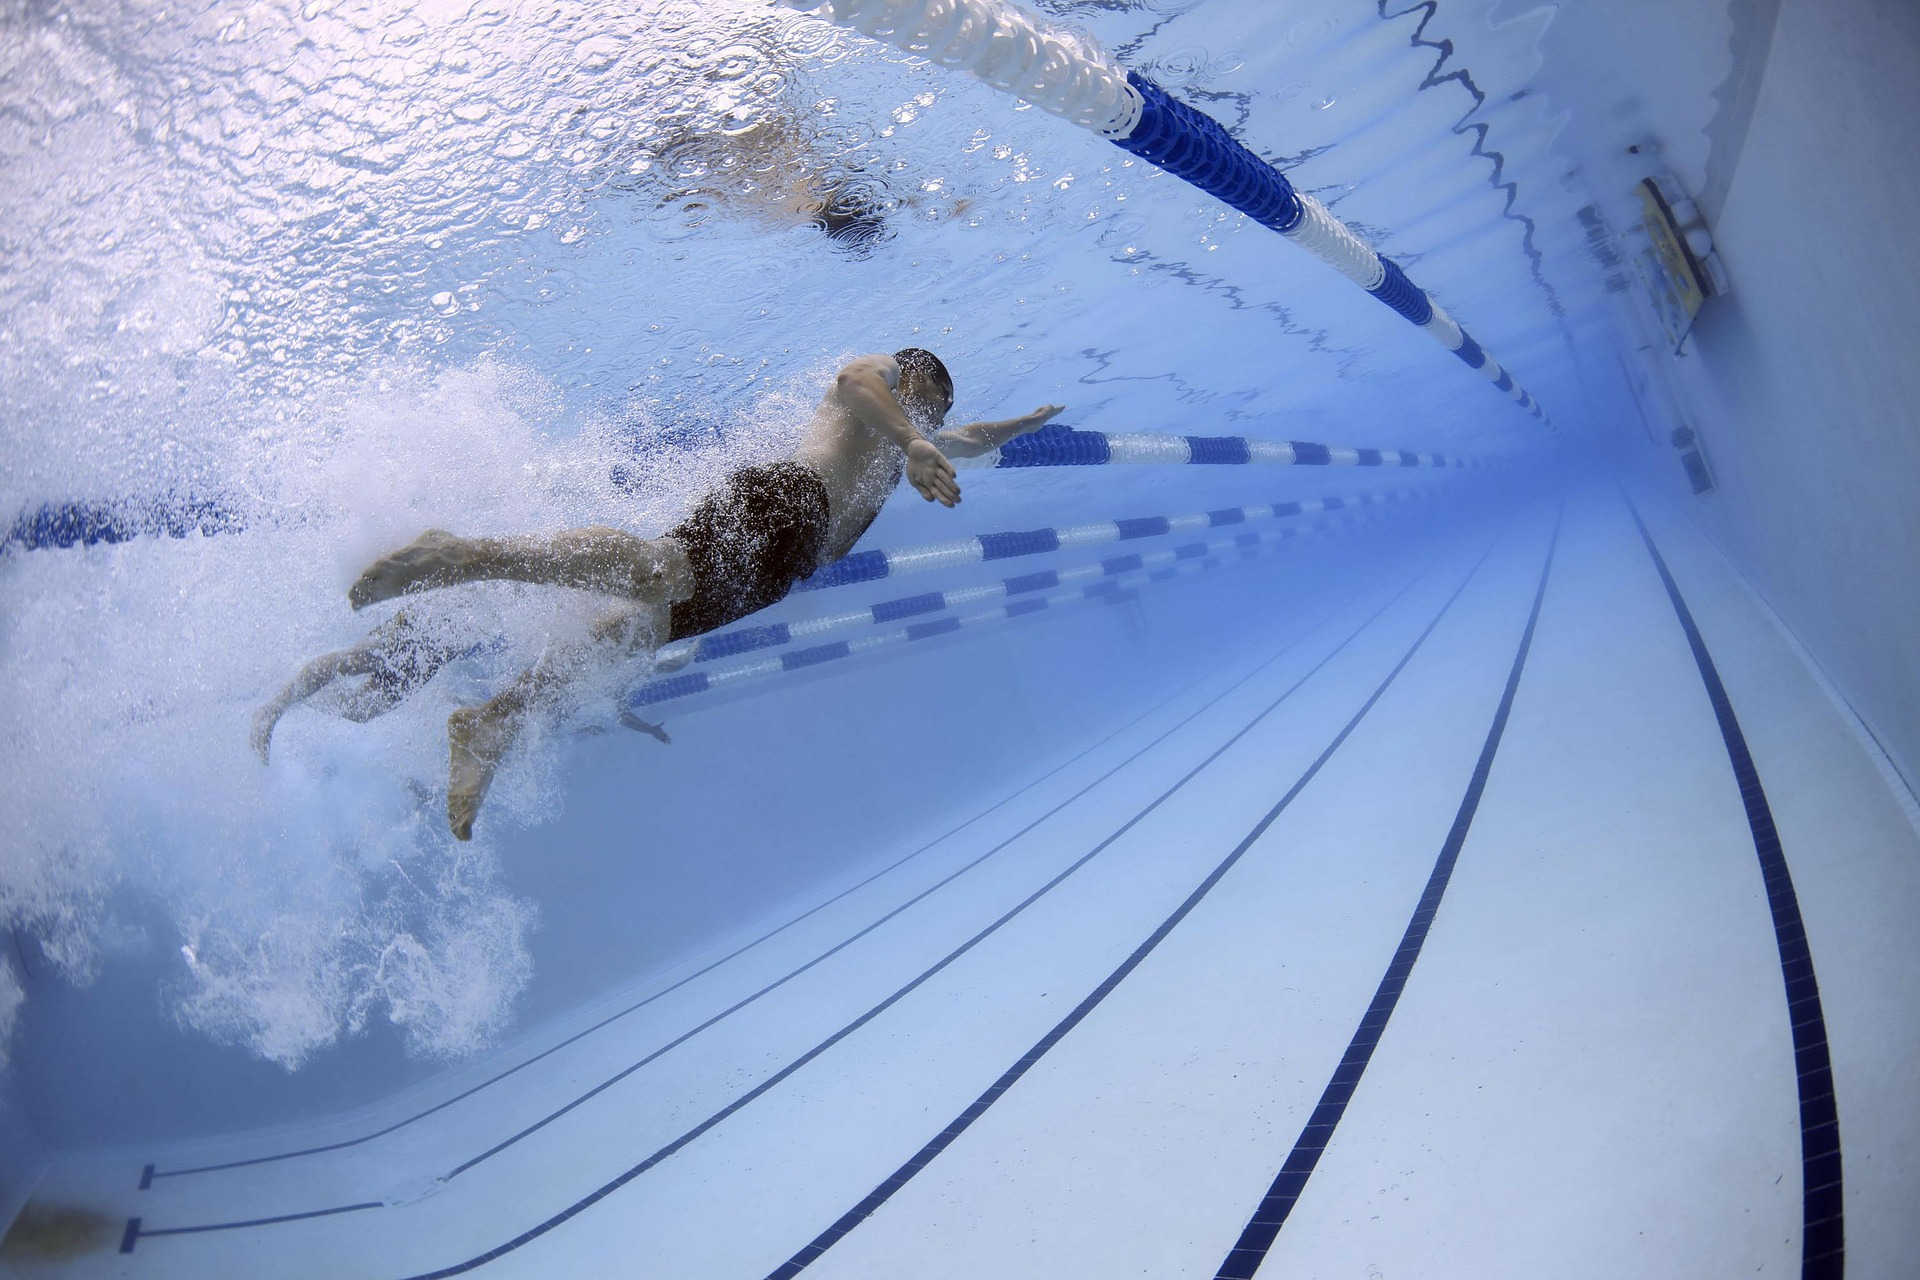 Swimming can provide beneficial cross-training for paddlers.